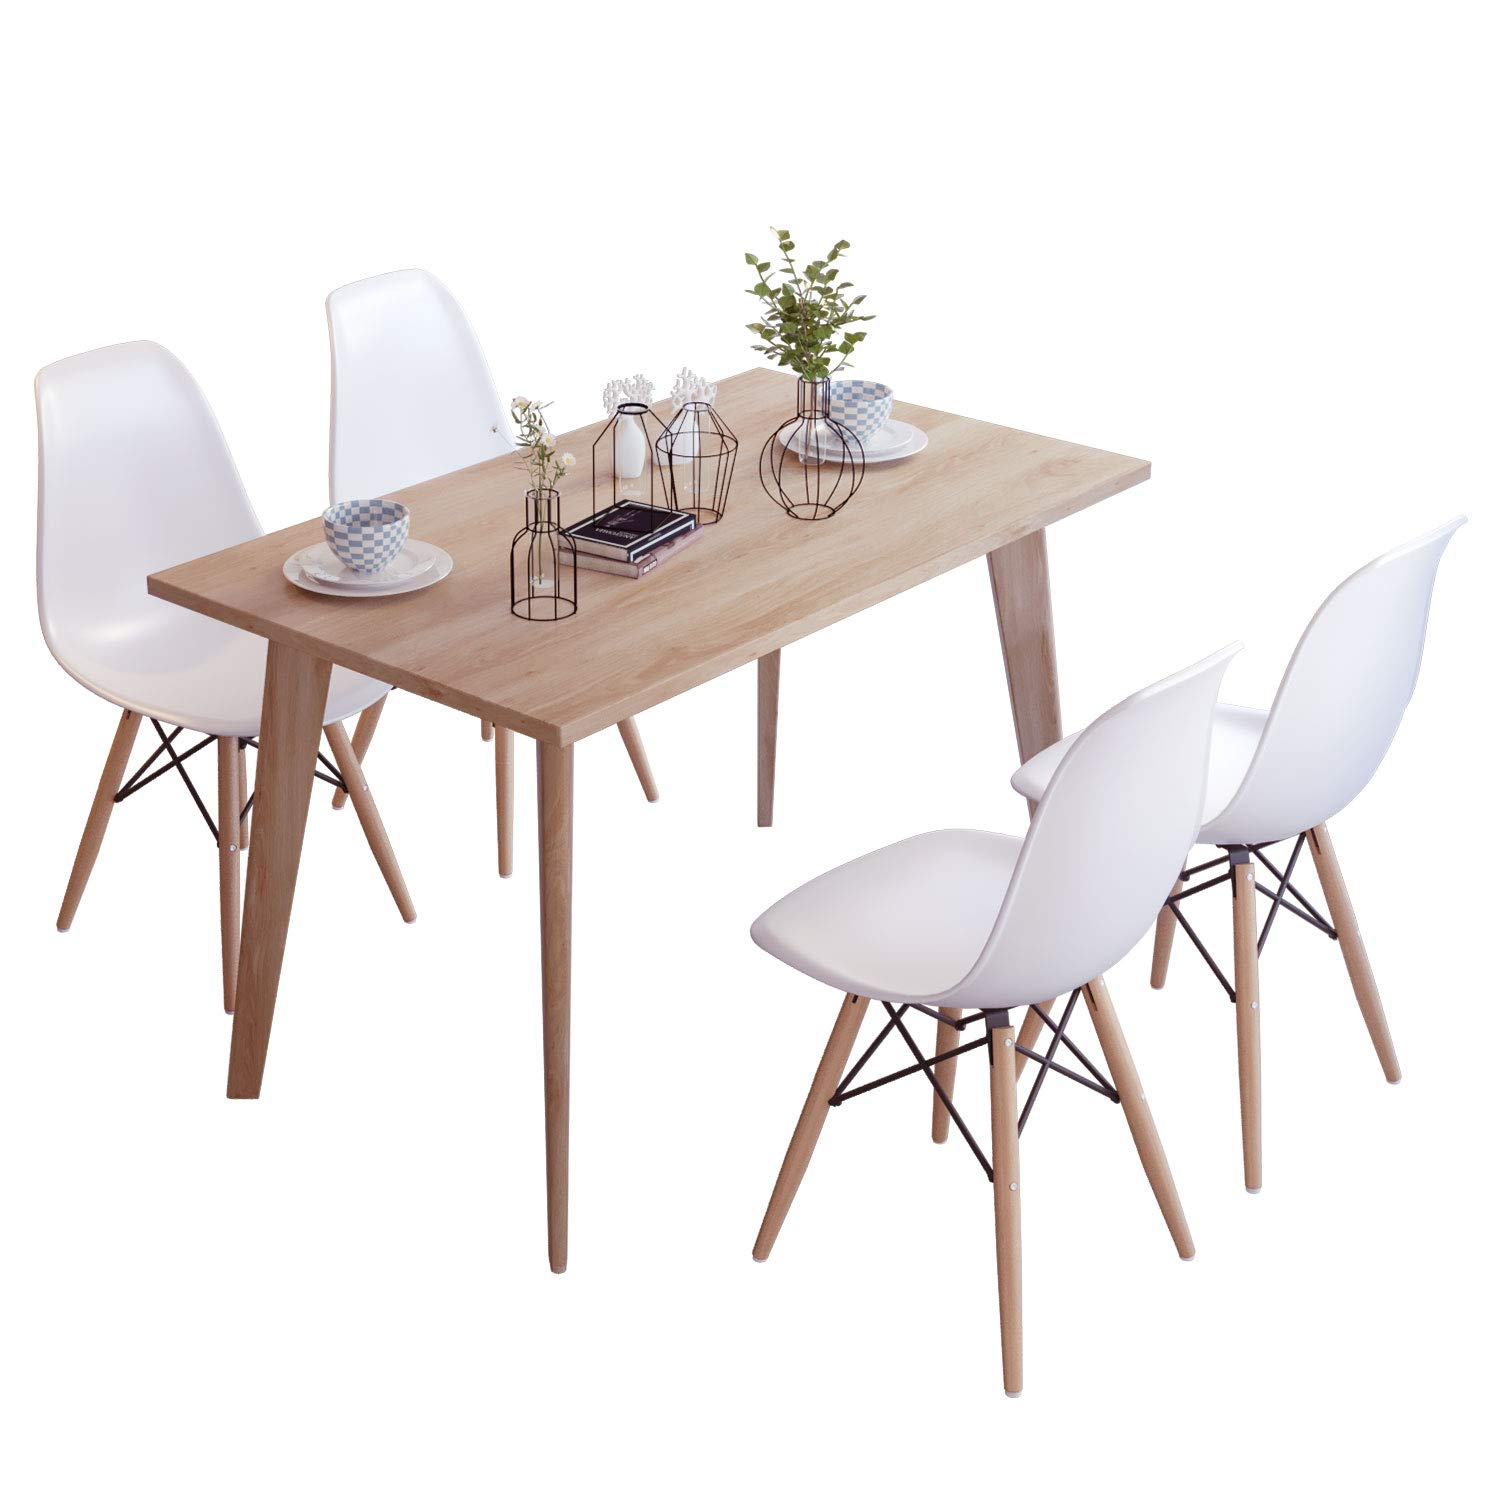 Furniture Round Dining Table Chairs Set Wooden Legs Yellow Grey Office Cafe Retro Design Home Furniture Diy Breadcrumbs Ie